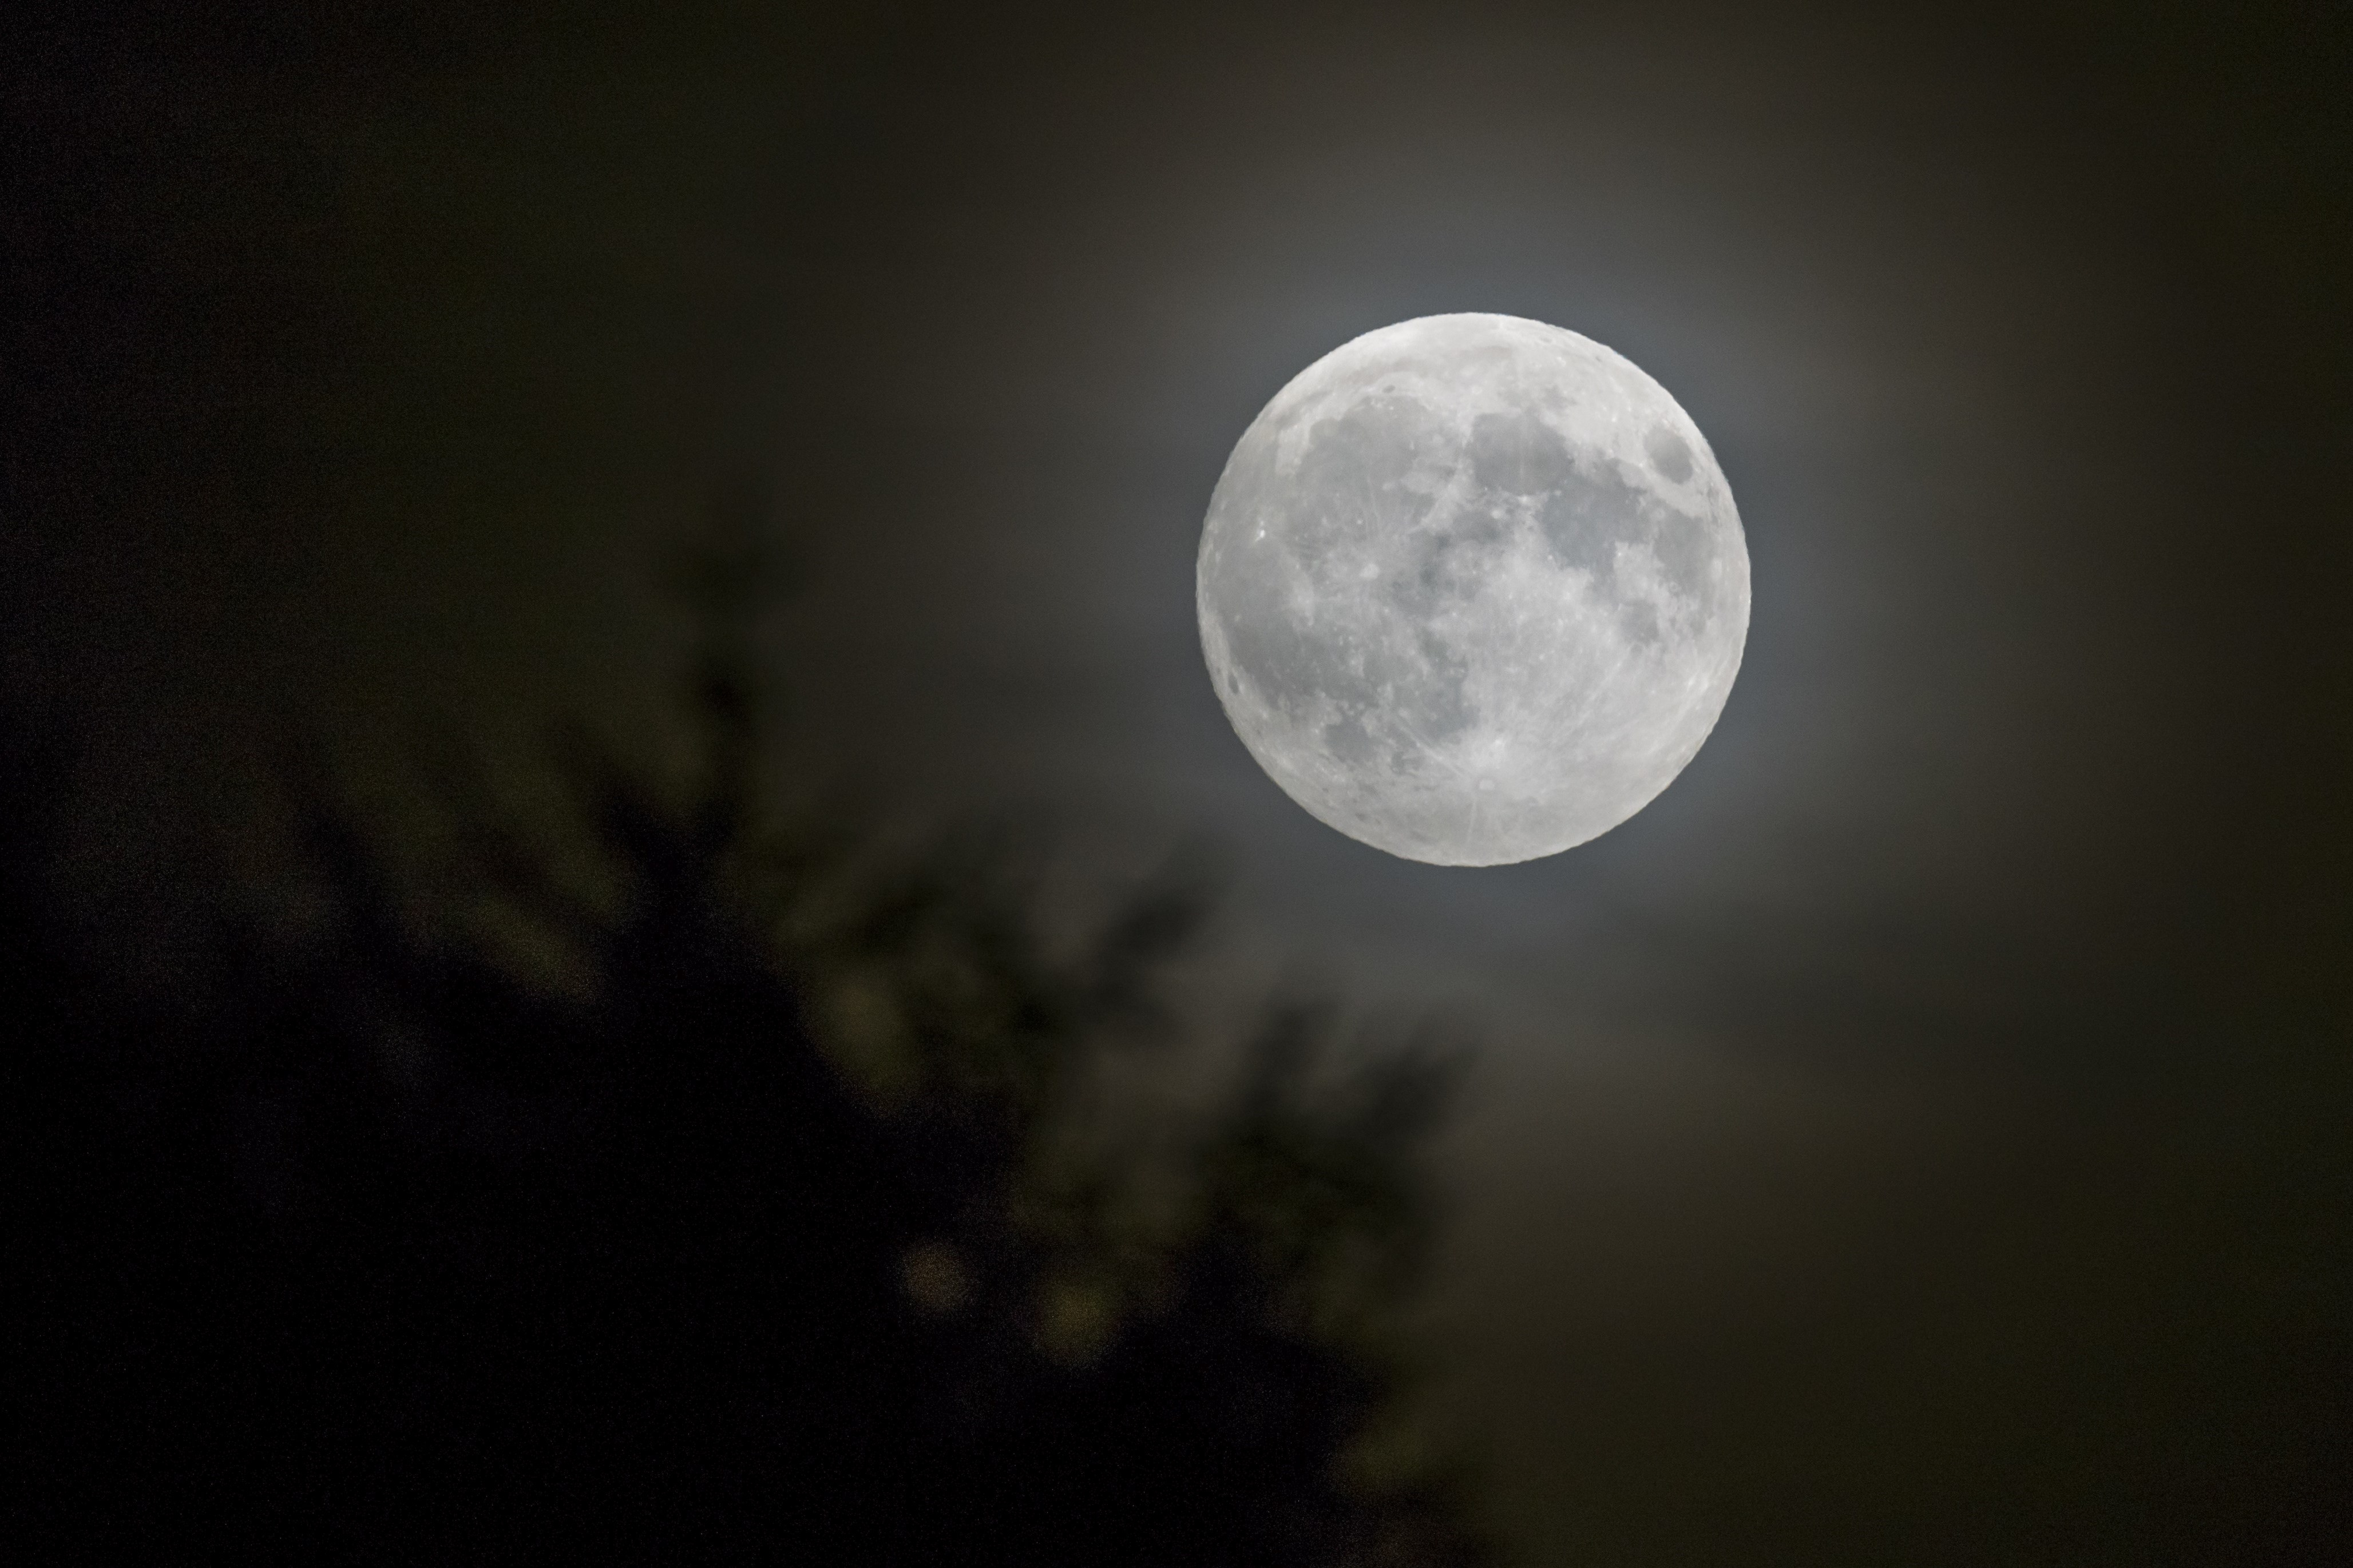 5 Ways The Full Moon Supposedly Affects Human Behavior